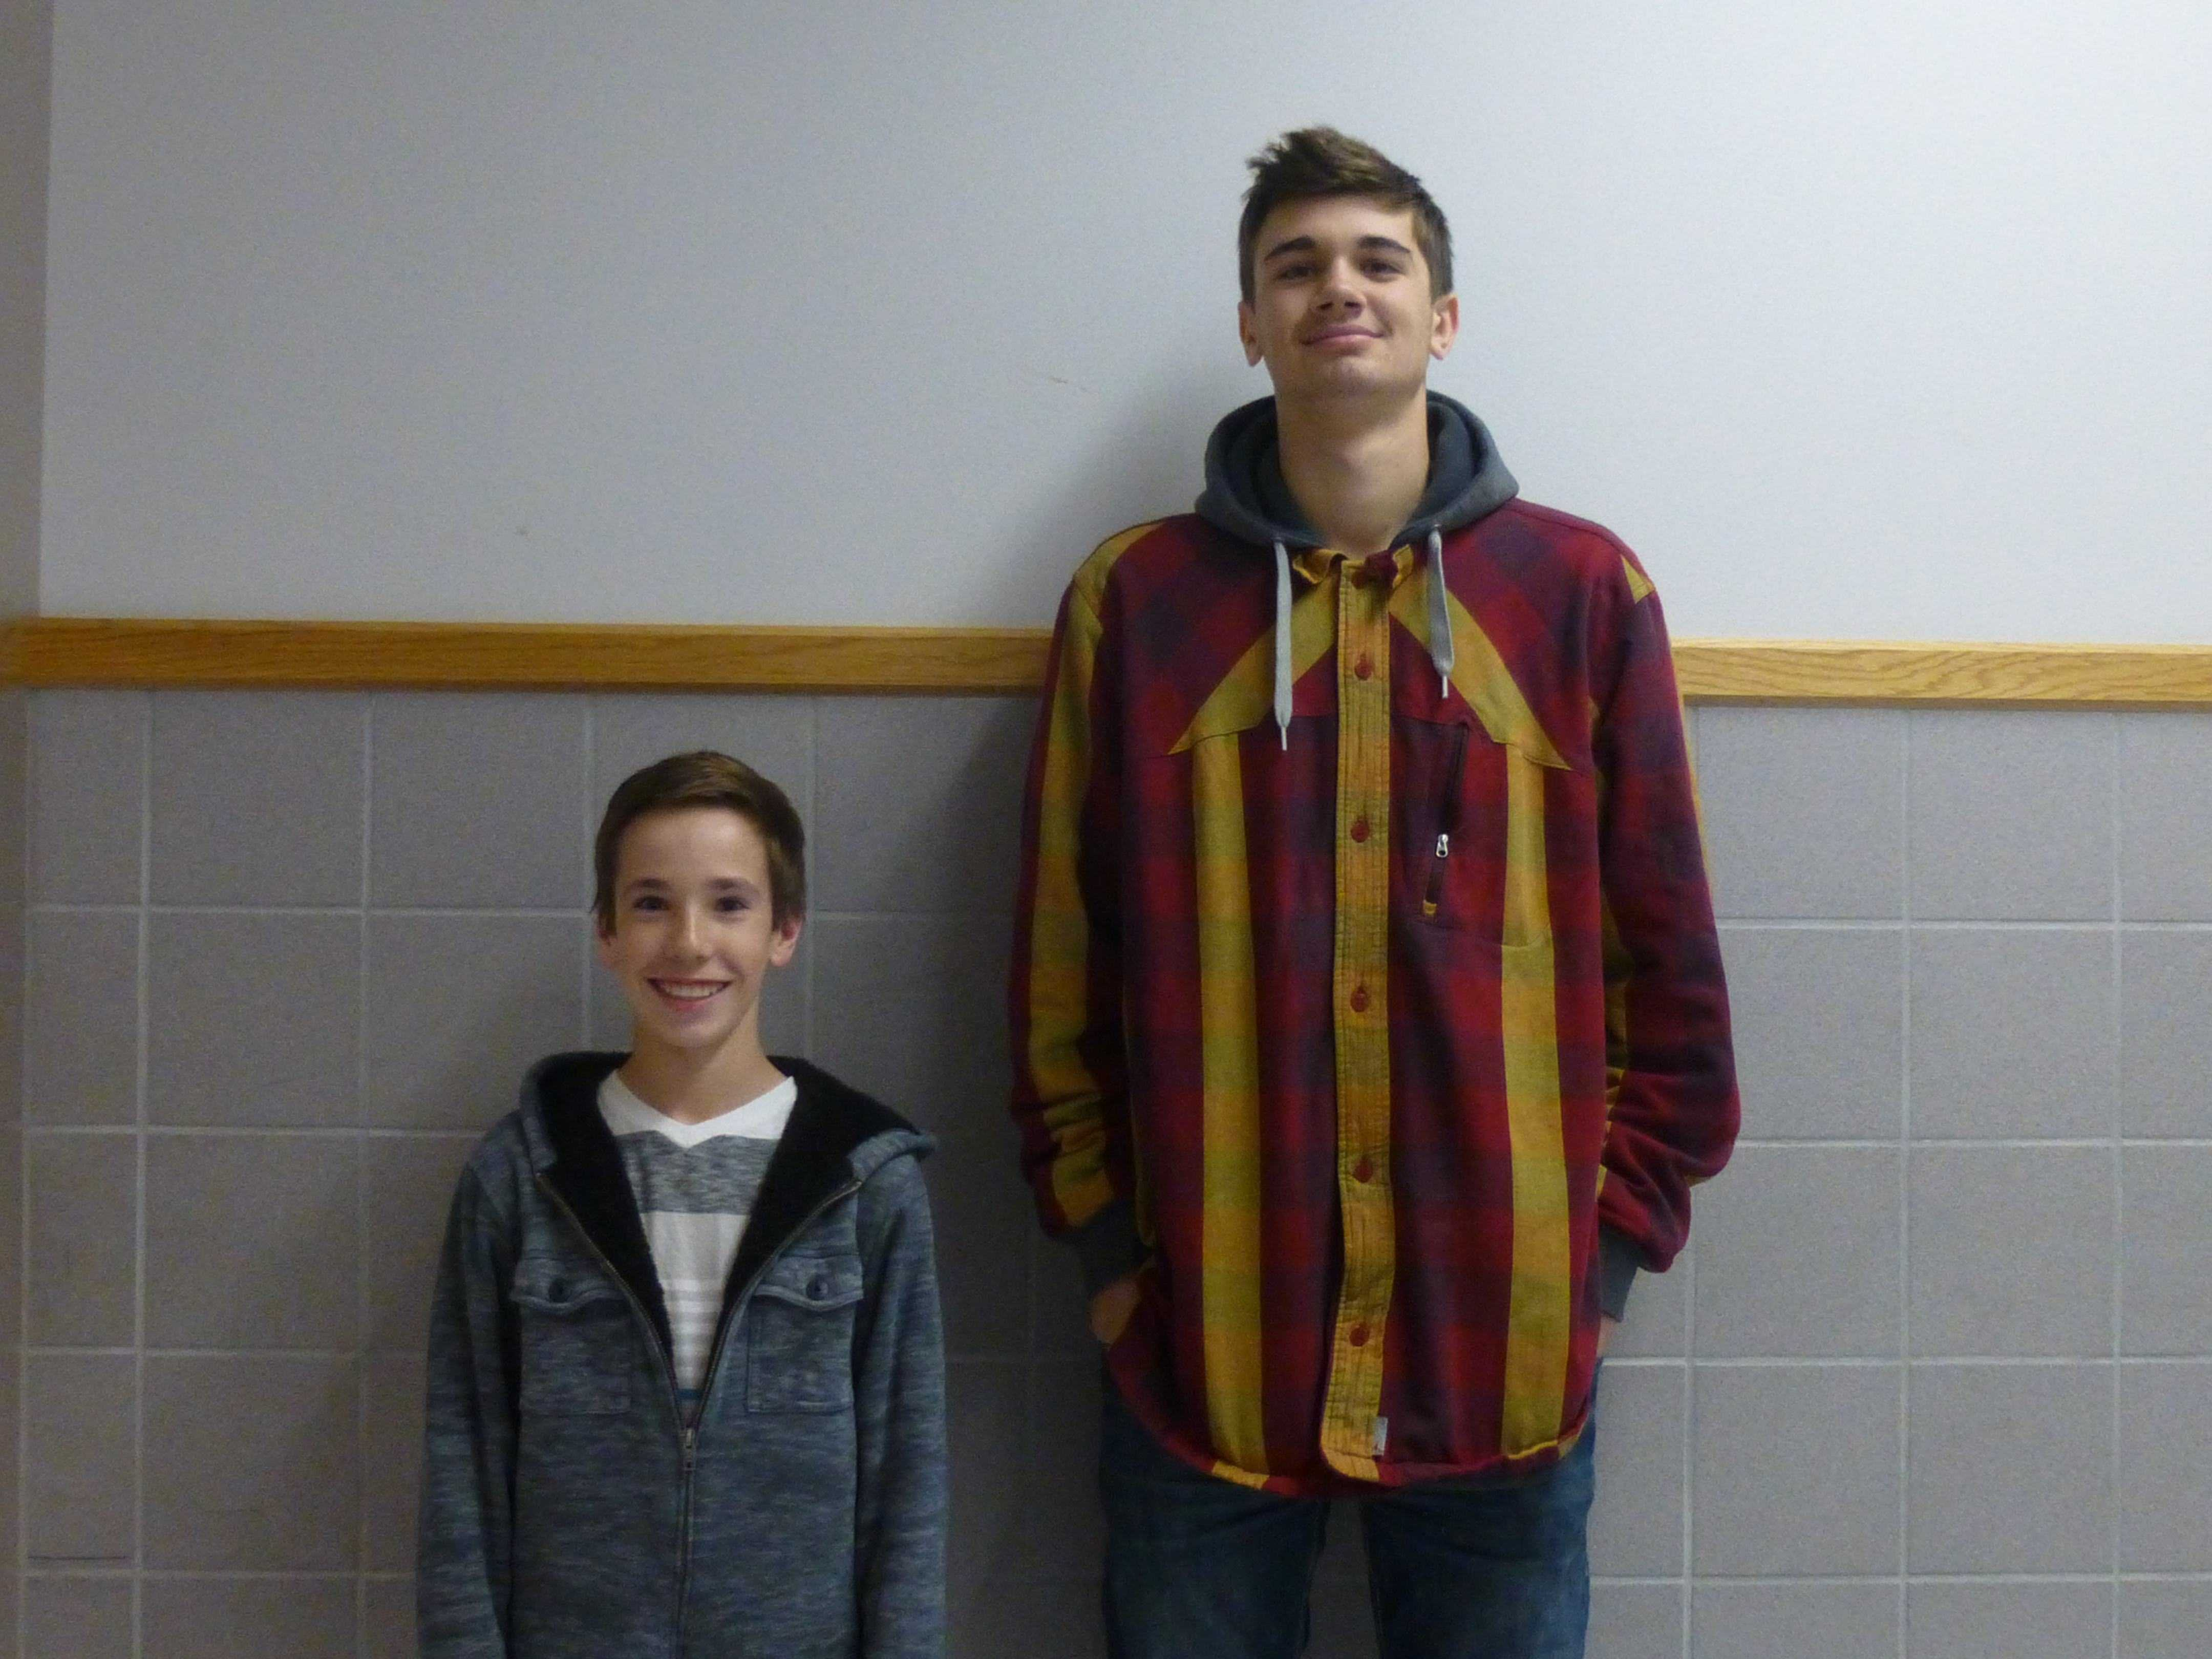 Braden Broadbent and Brandon Morley display the great differences in their heights.